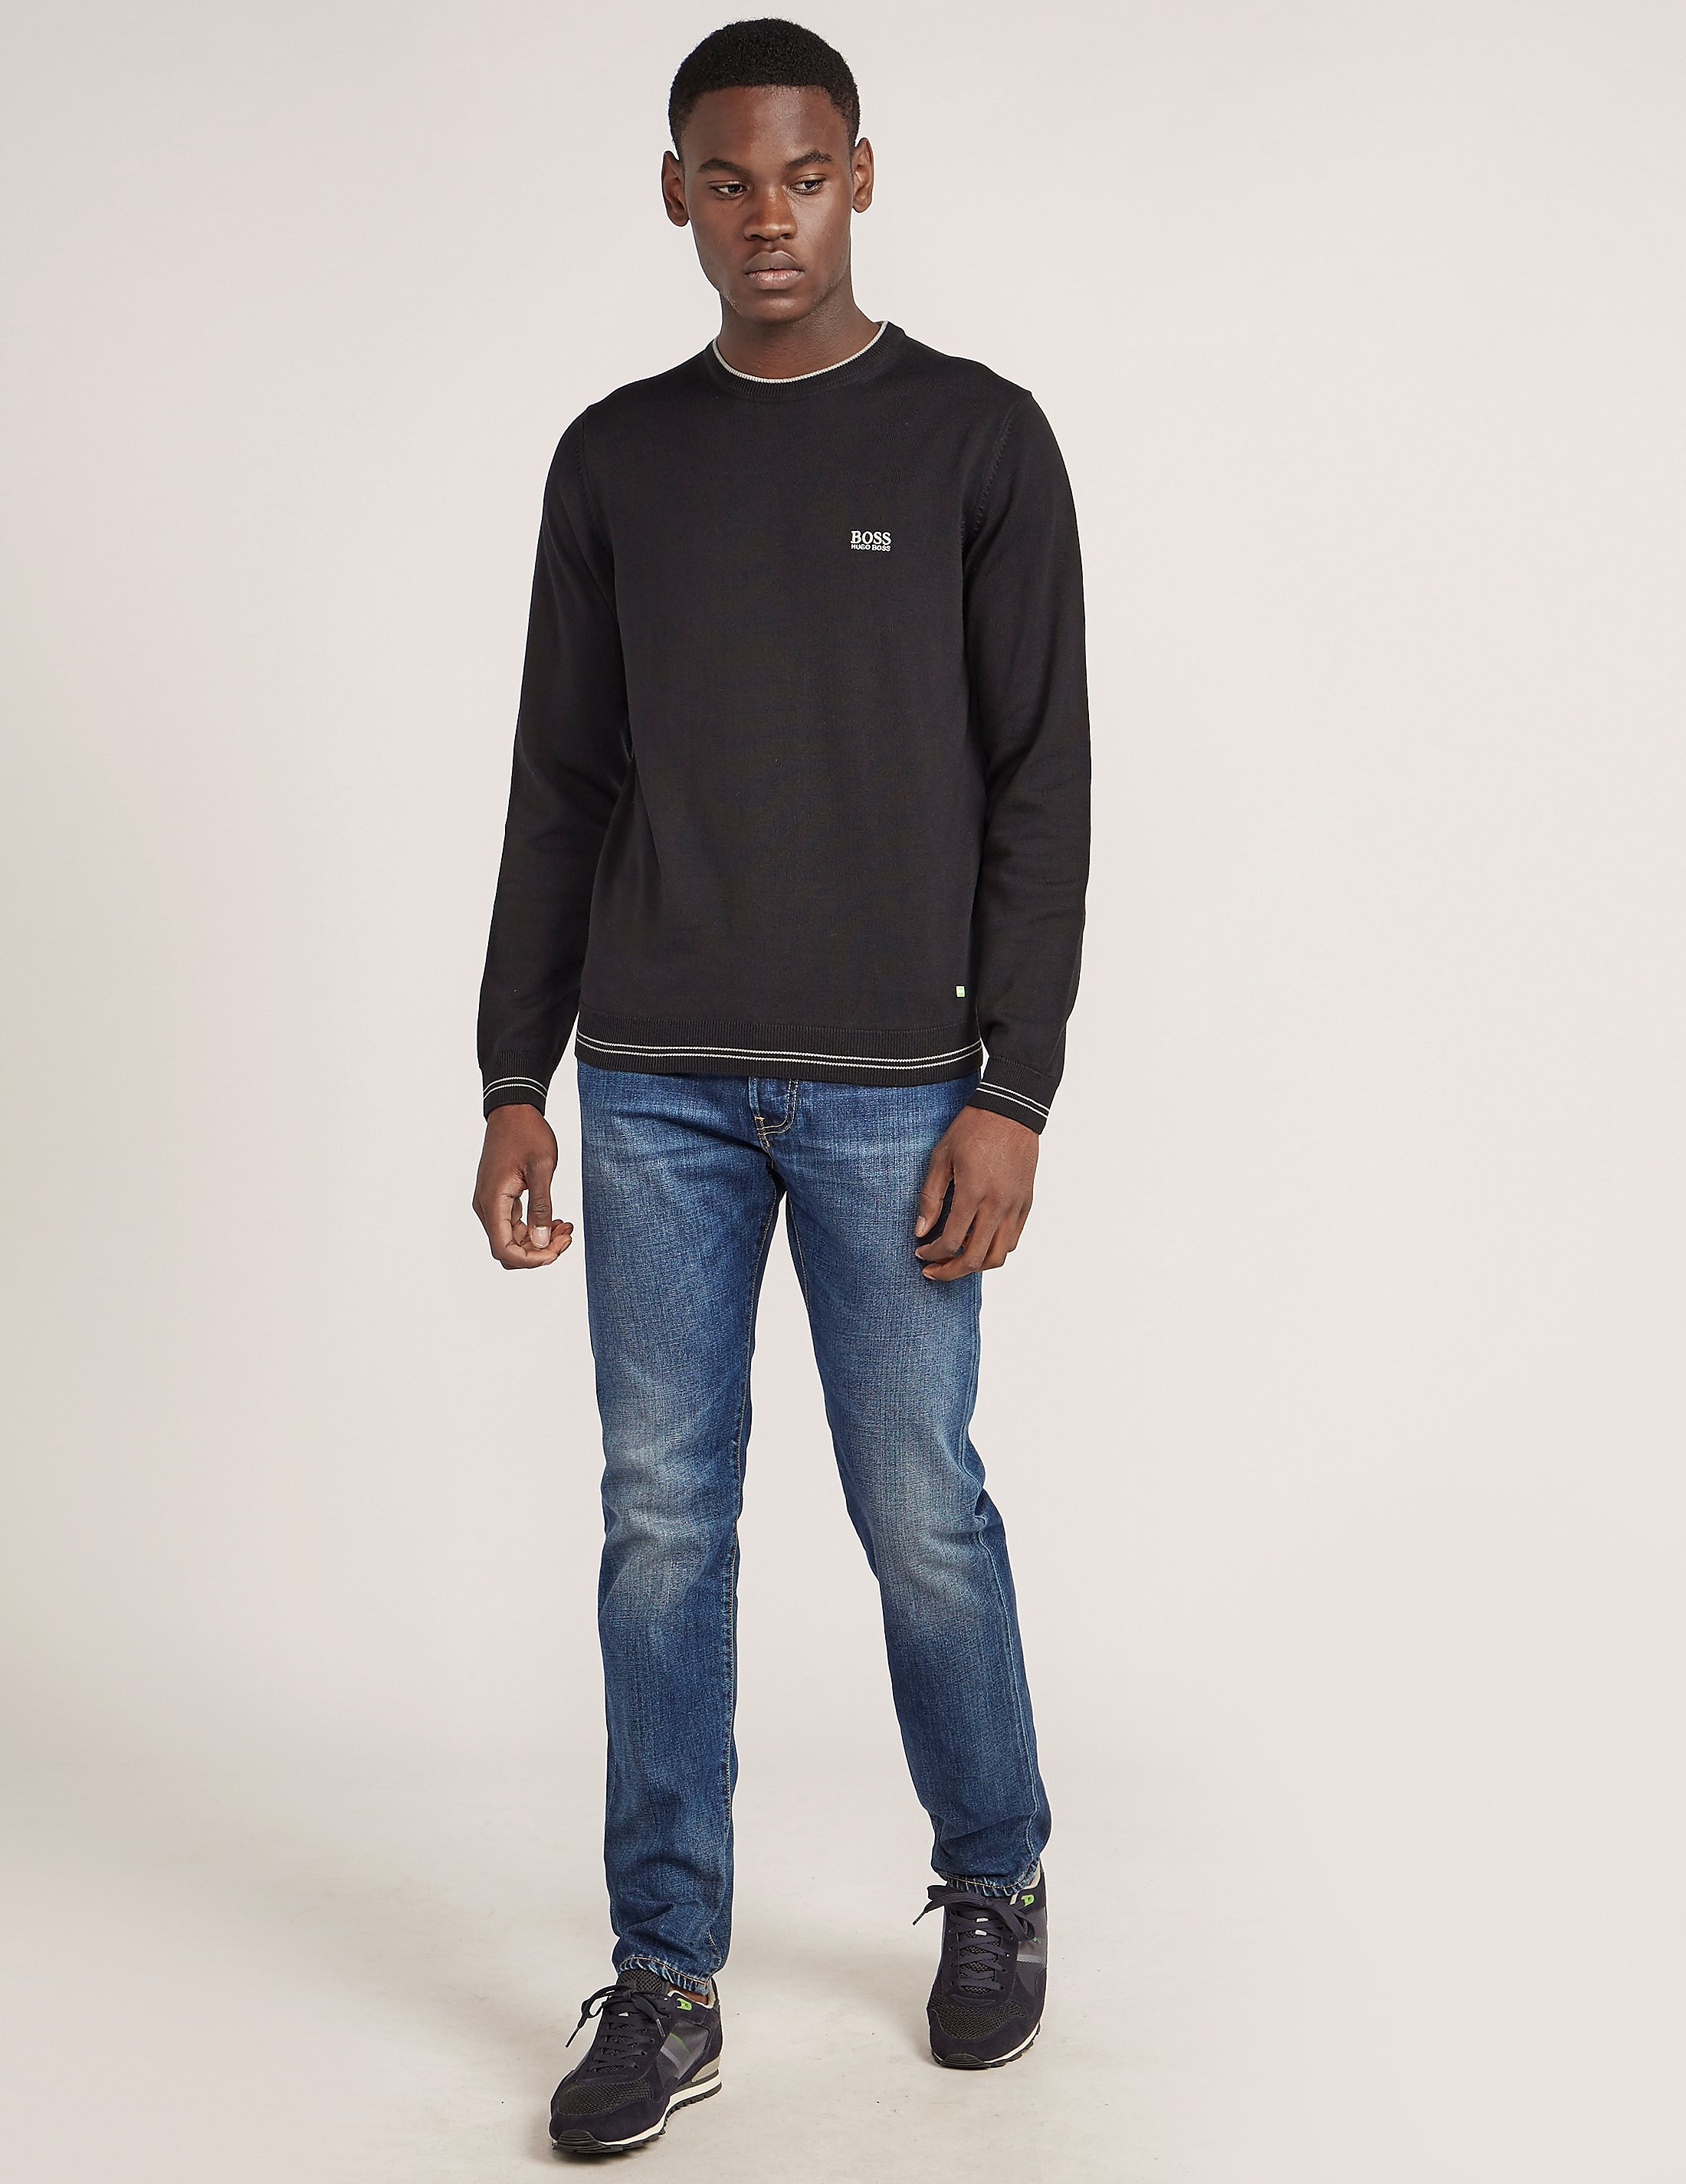 BOSS Green Rime Crew Neck Knit